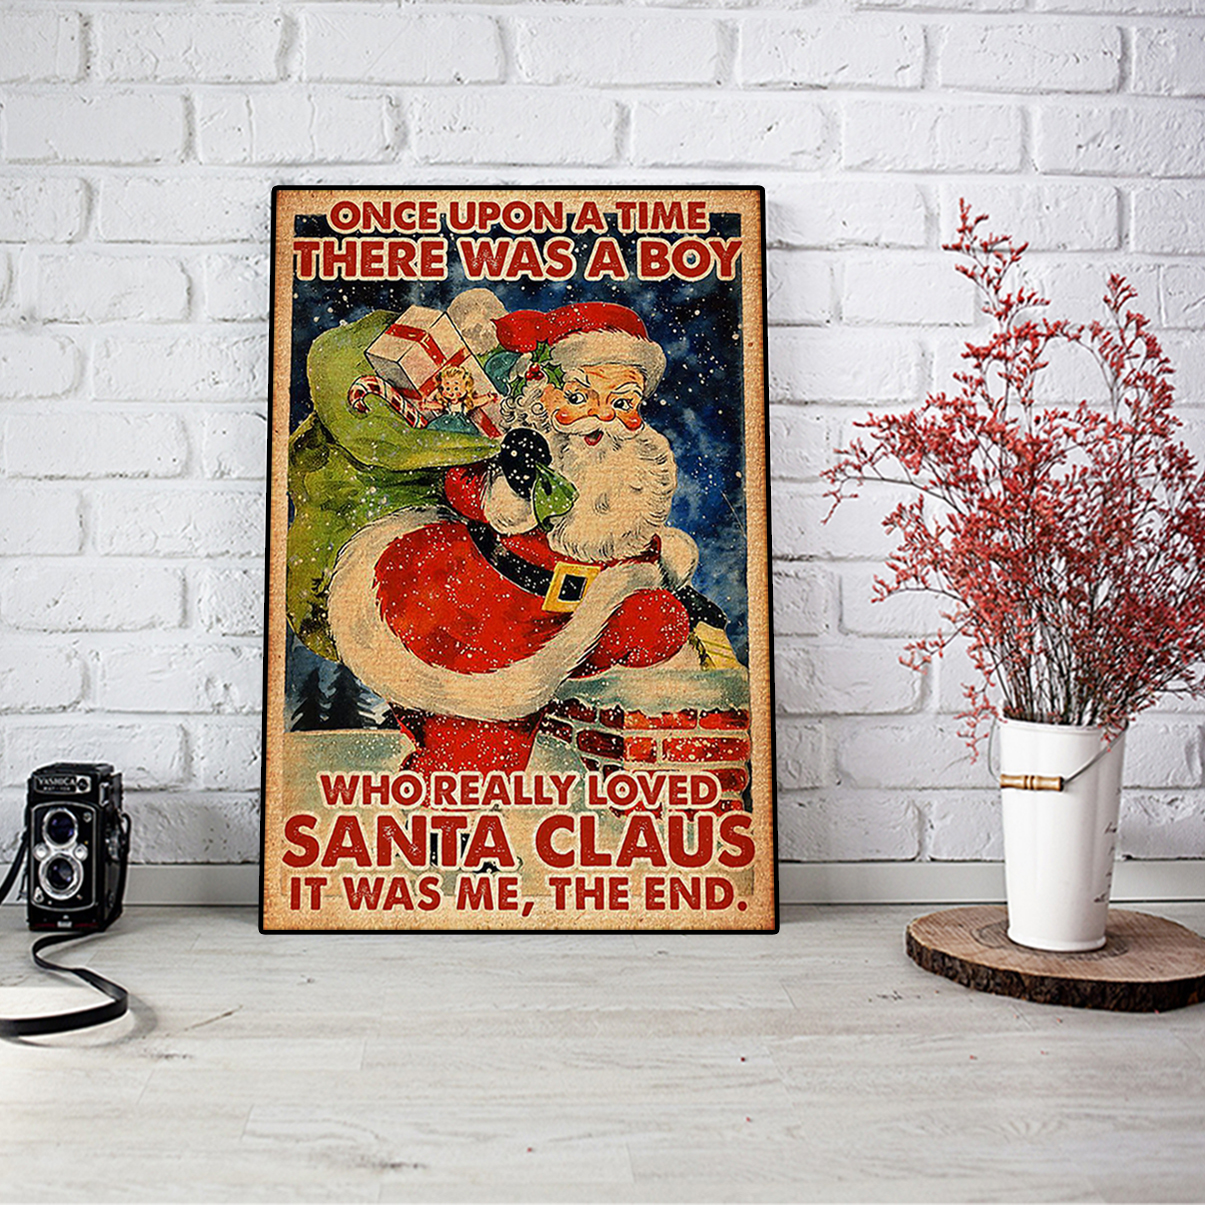 Once upon a time there was a boy who really loved santa claus poster A1